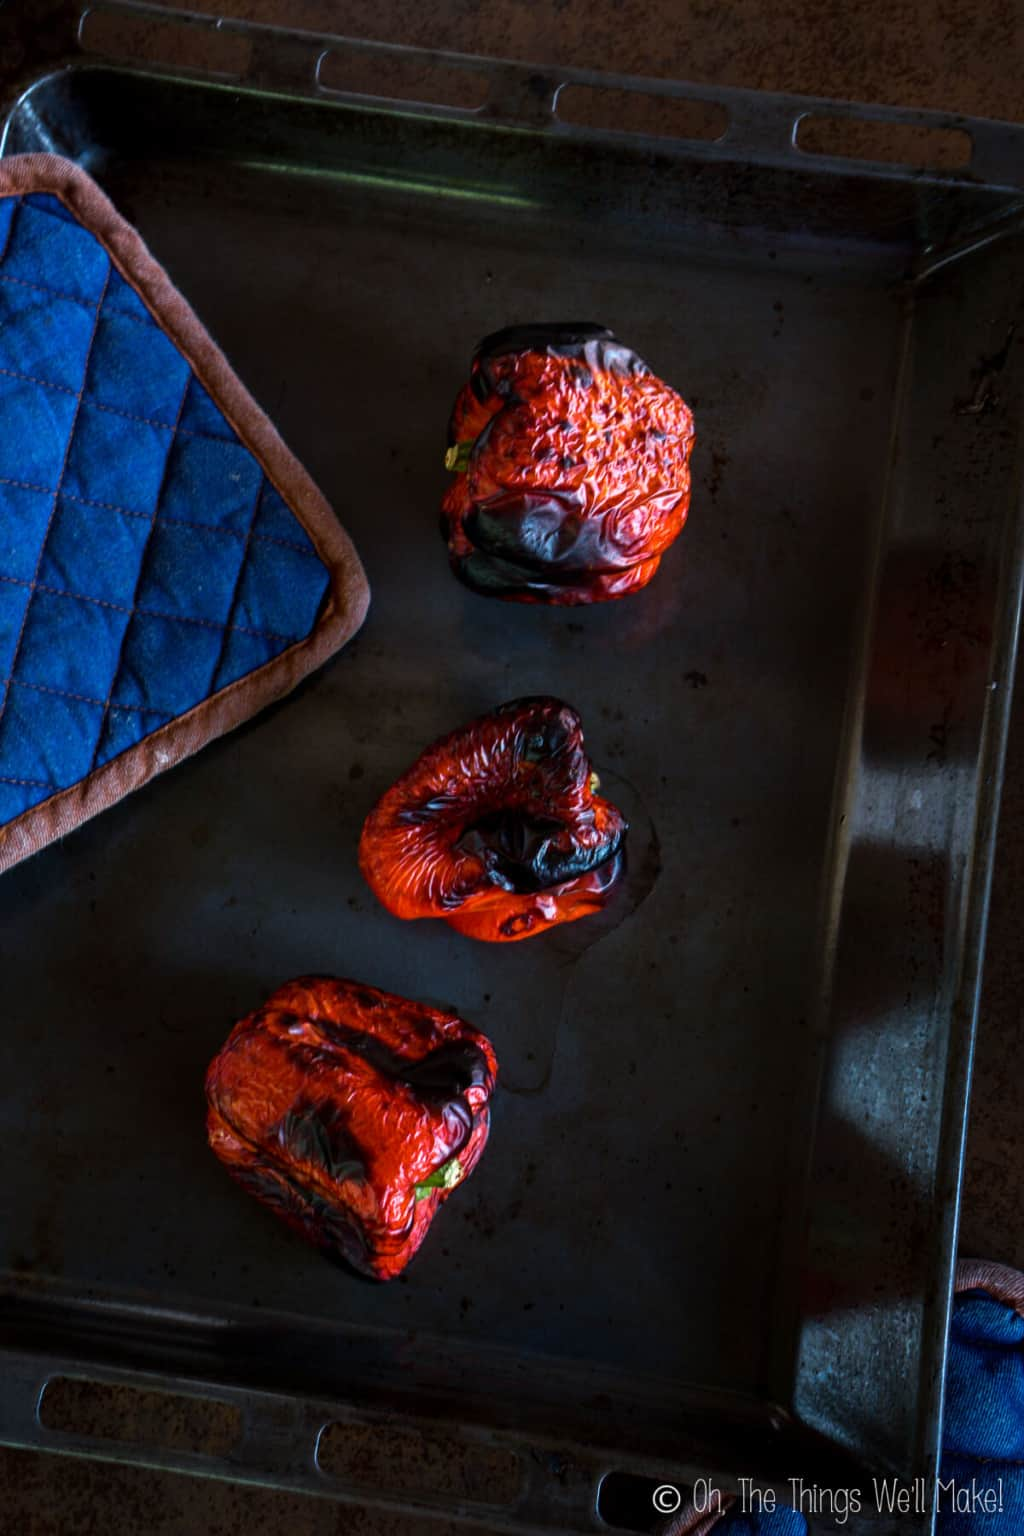 Top view of three roasted red peppers with char-broiled skin on a baking pan